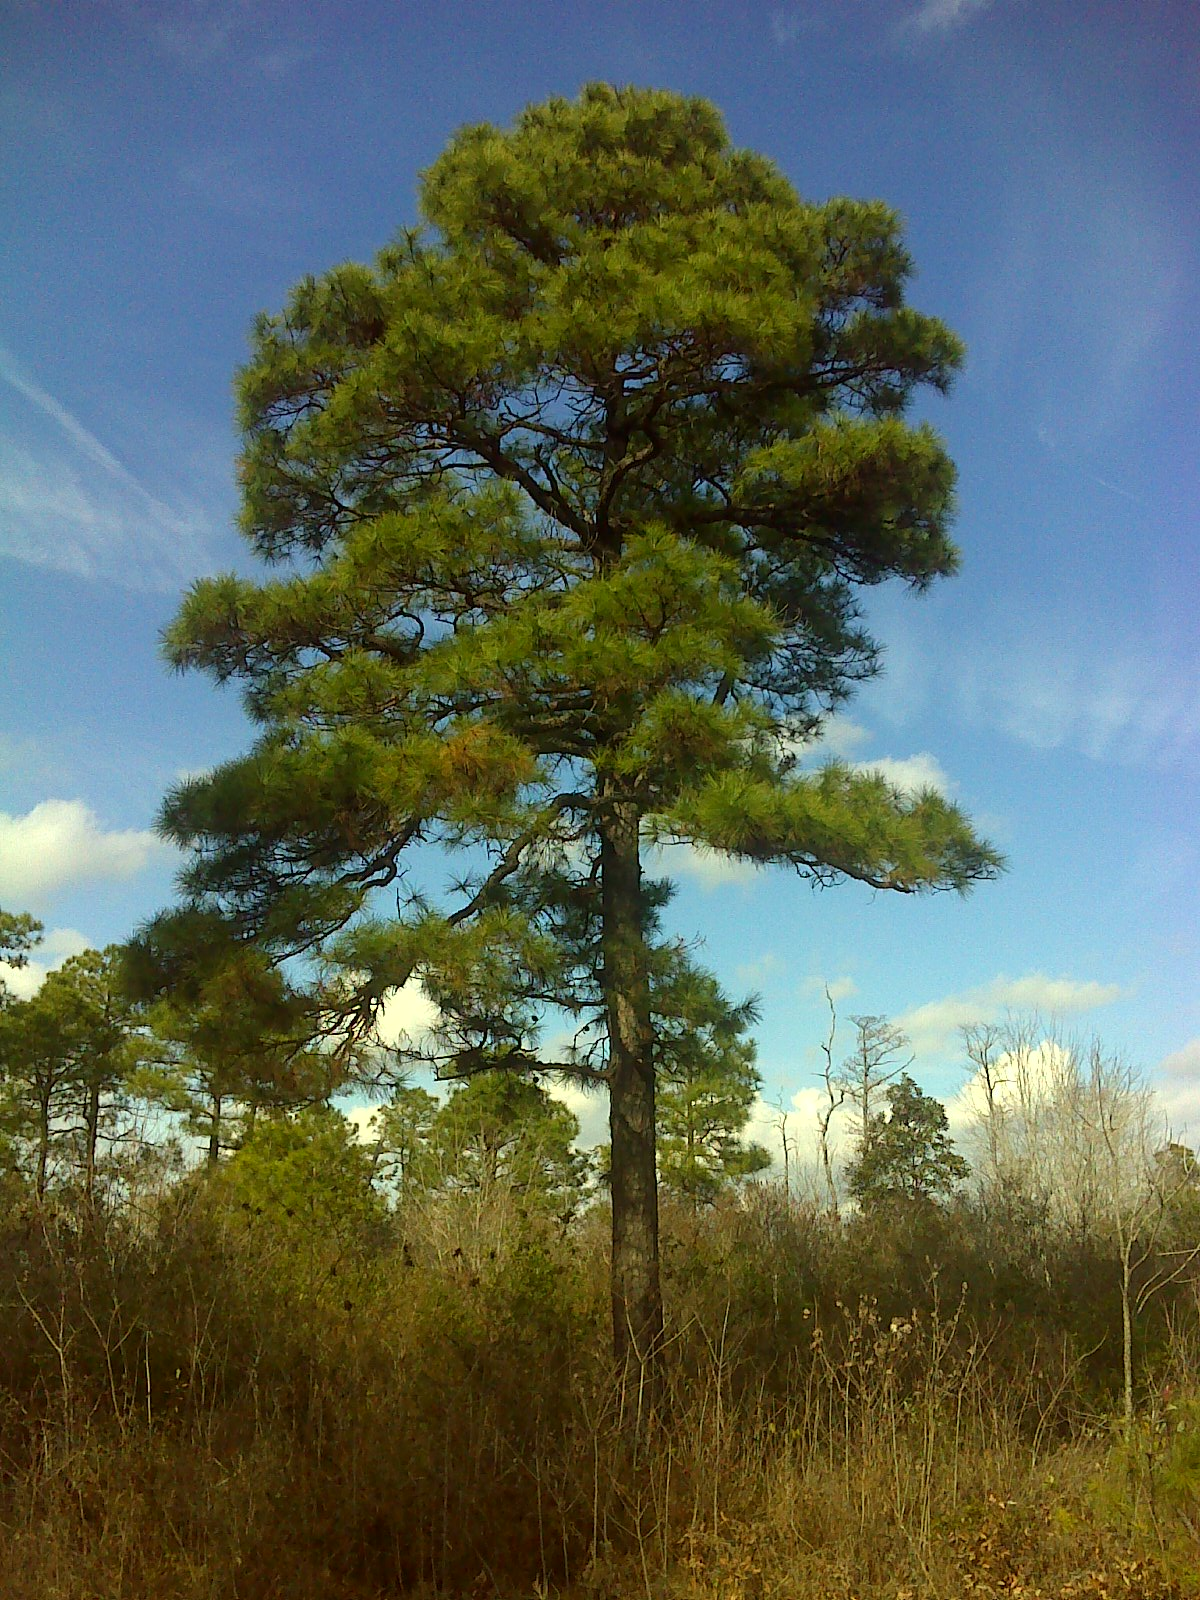 Pines, humans, genome…